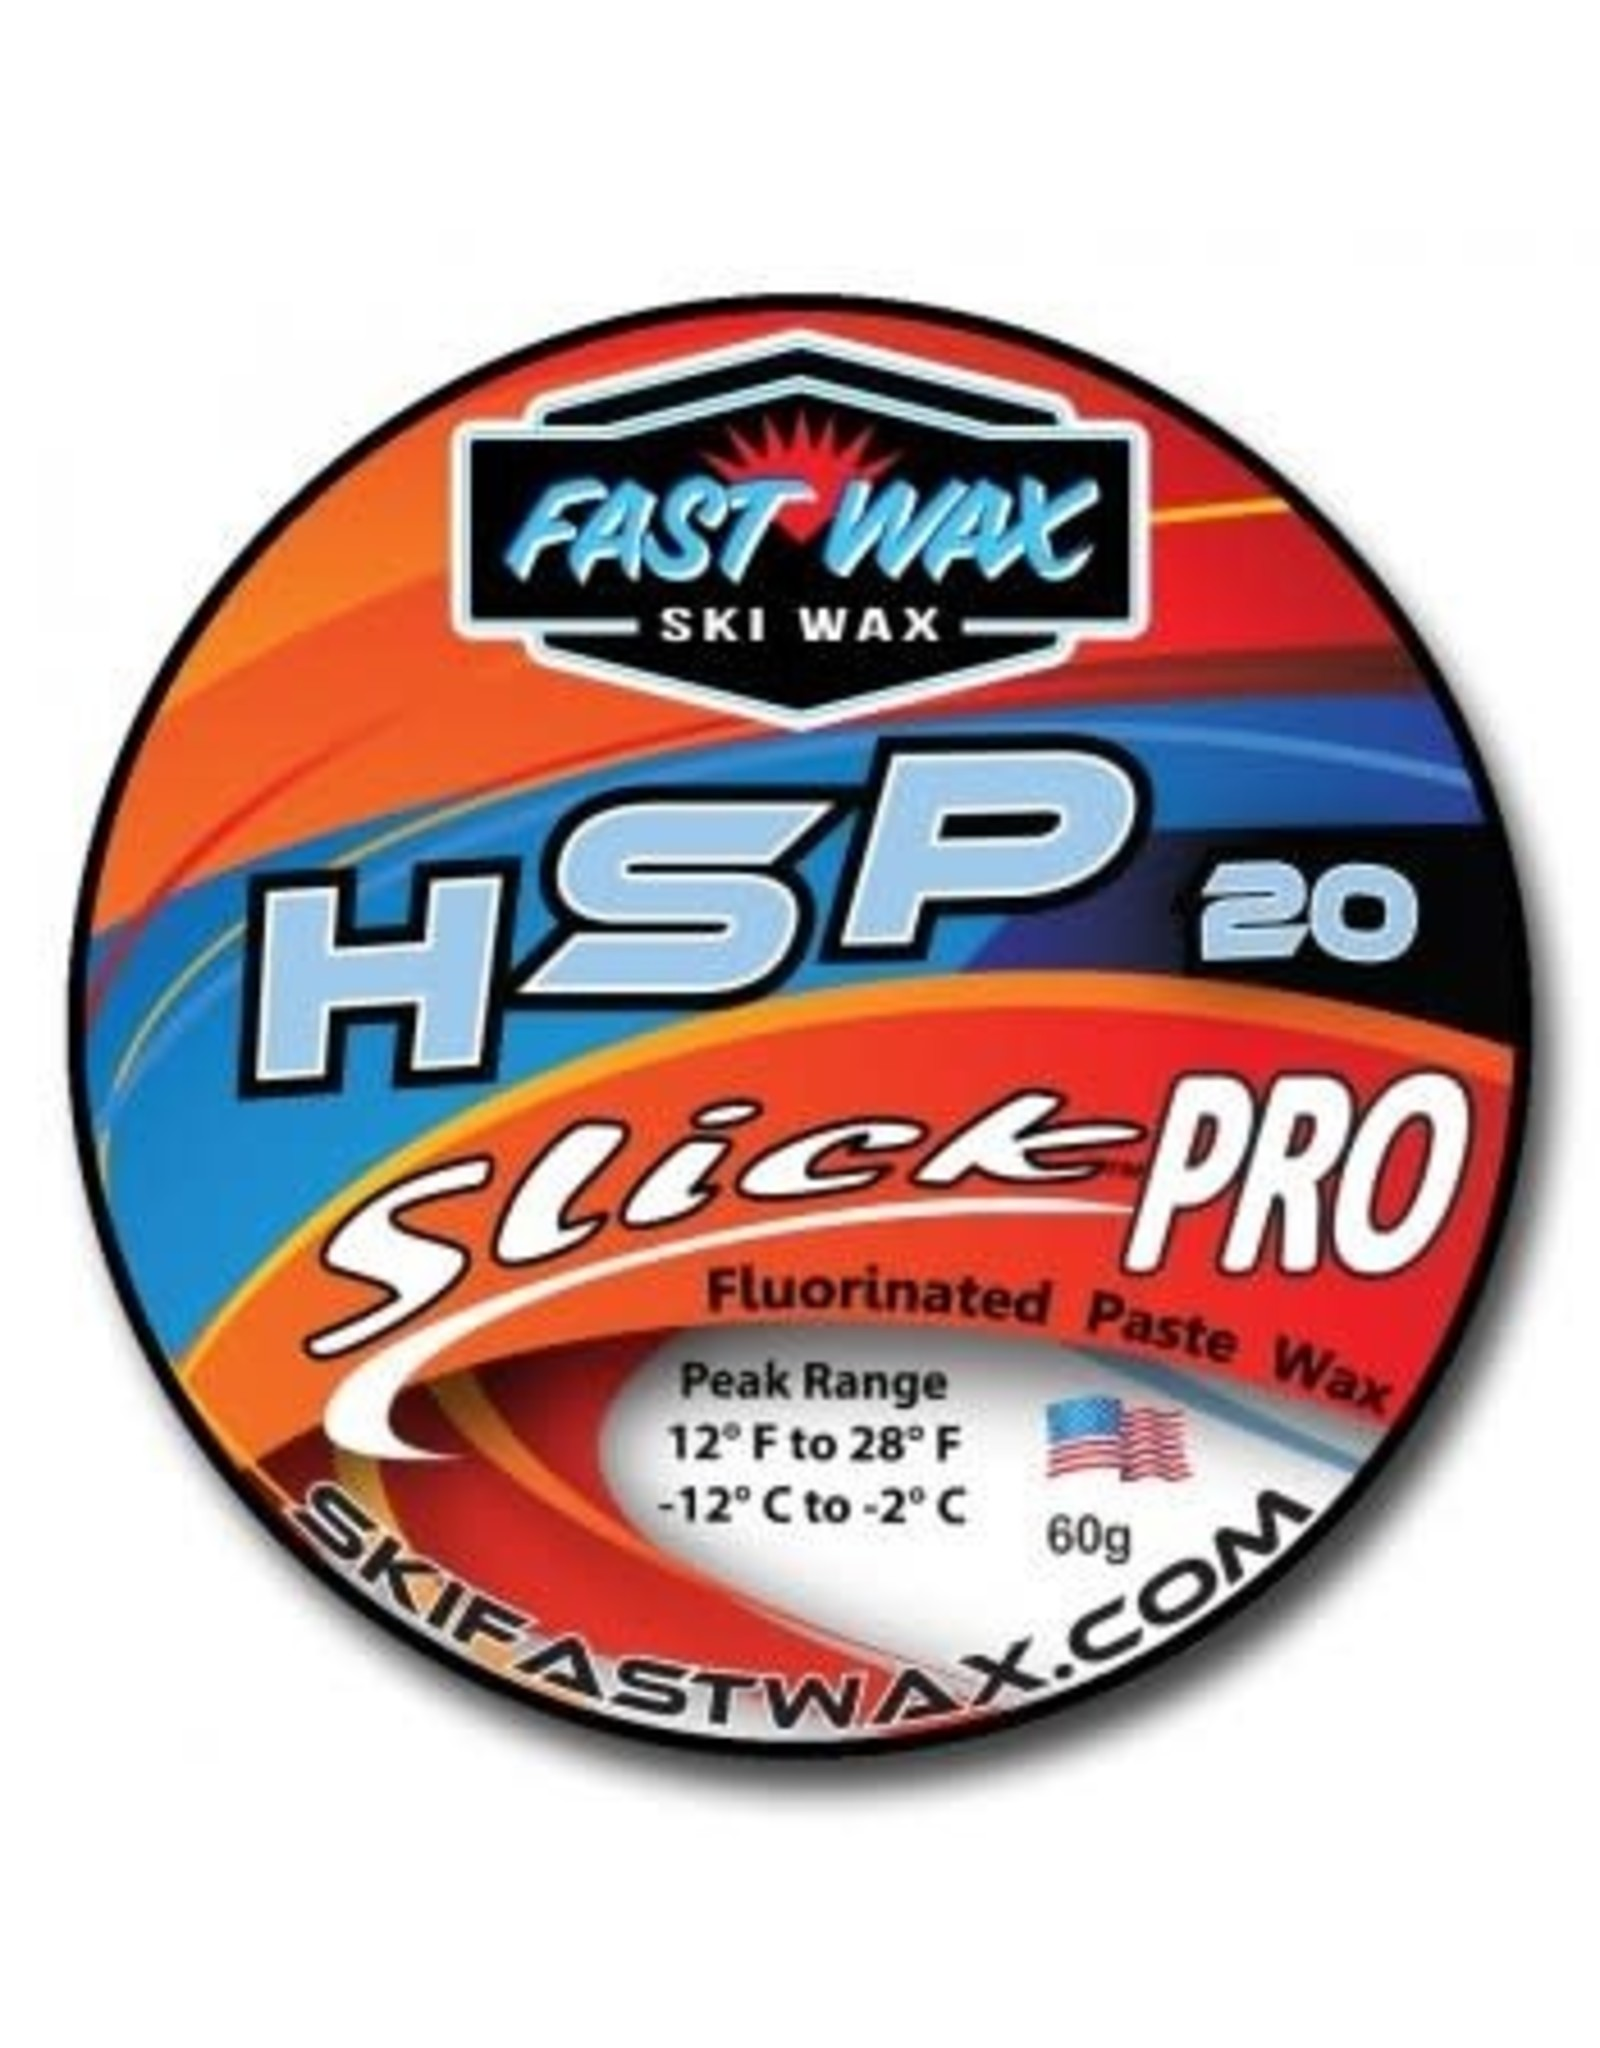 Fast Wax Fast Wax SlickPro HSP 20 Blue